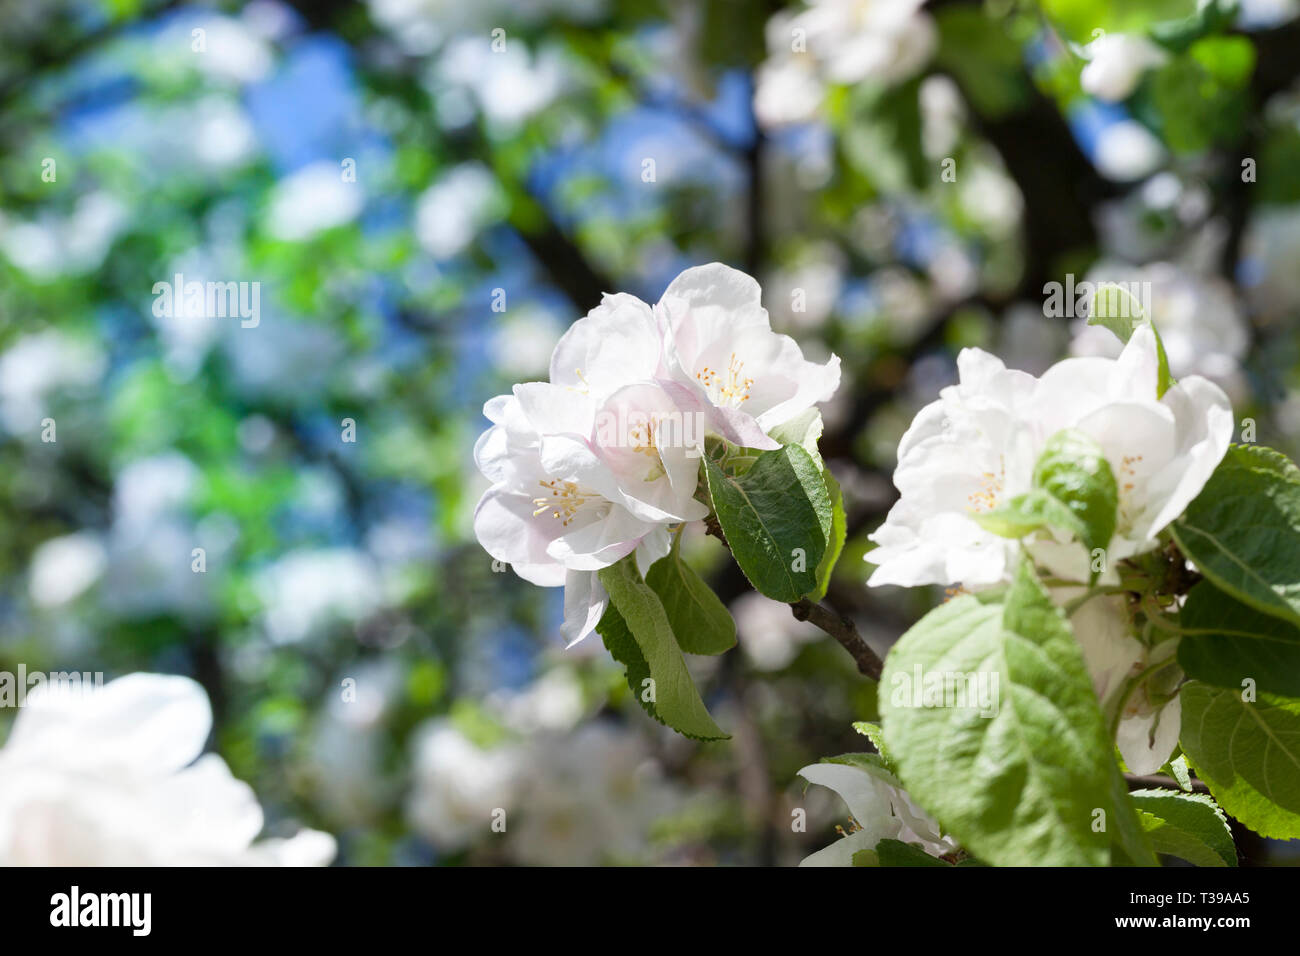 Beautiful Large White Flowers Of The Fruit Tree In Spring Stock